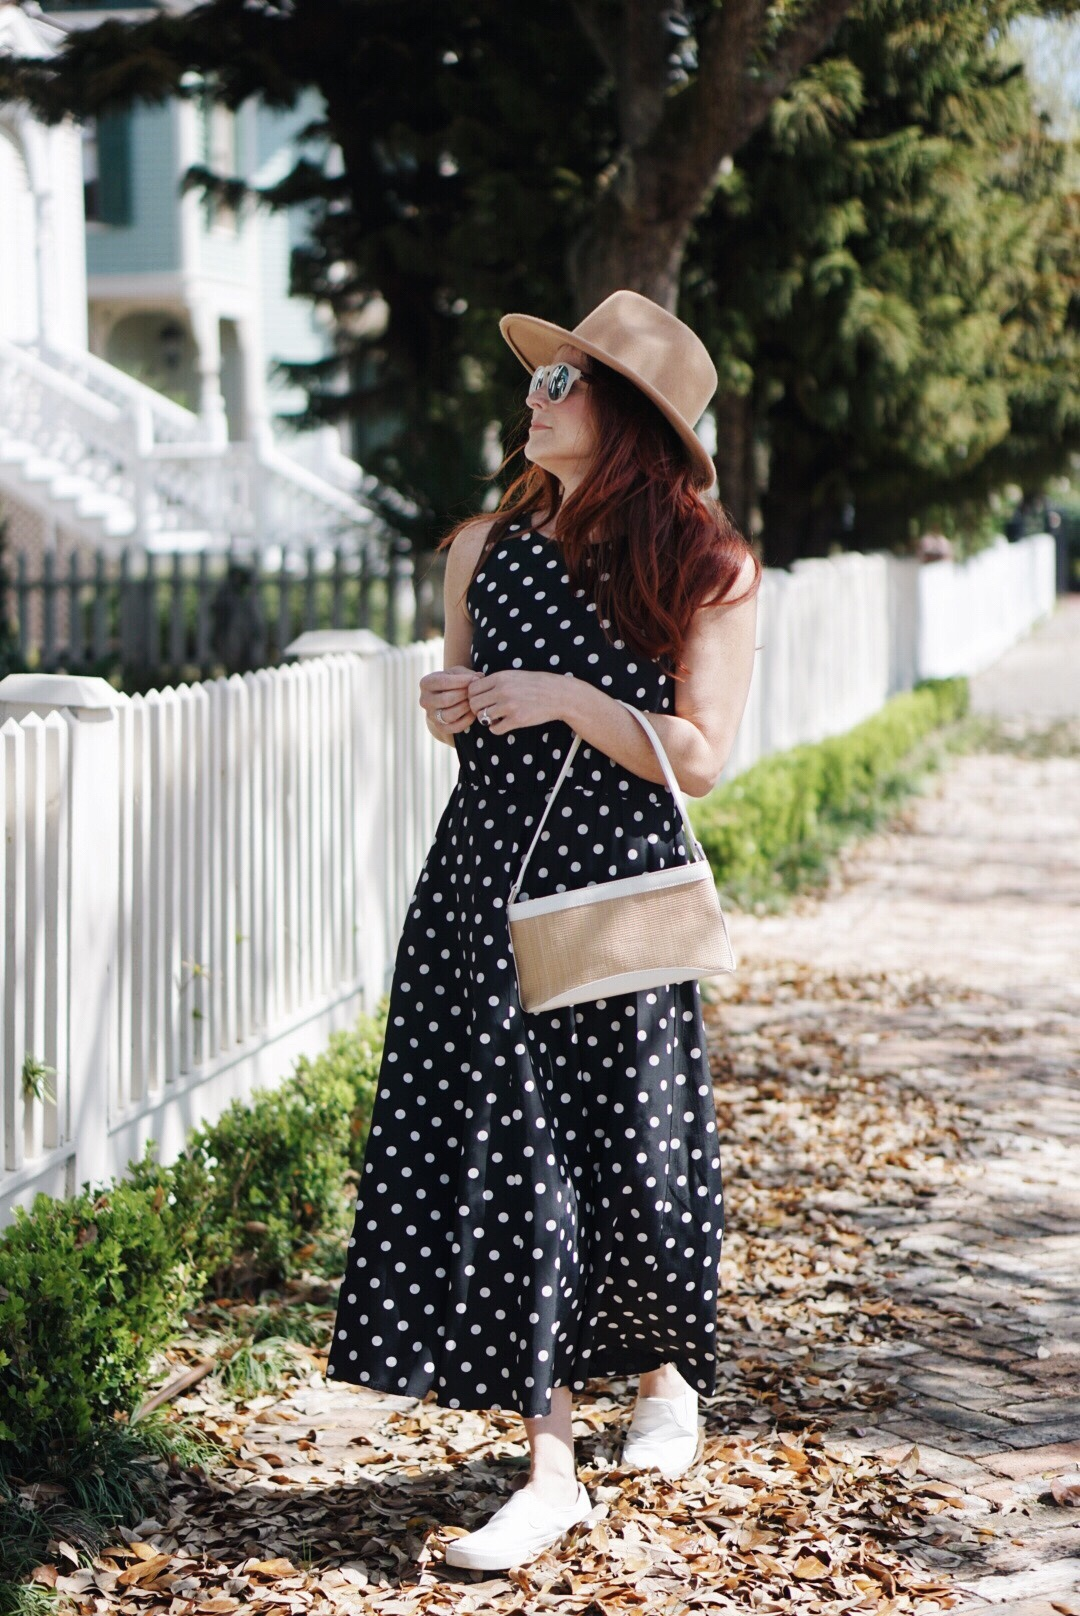 straw bag, red hair, country chic style, polka dot dress